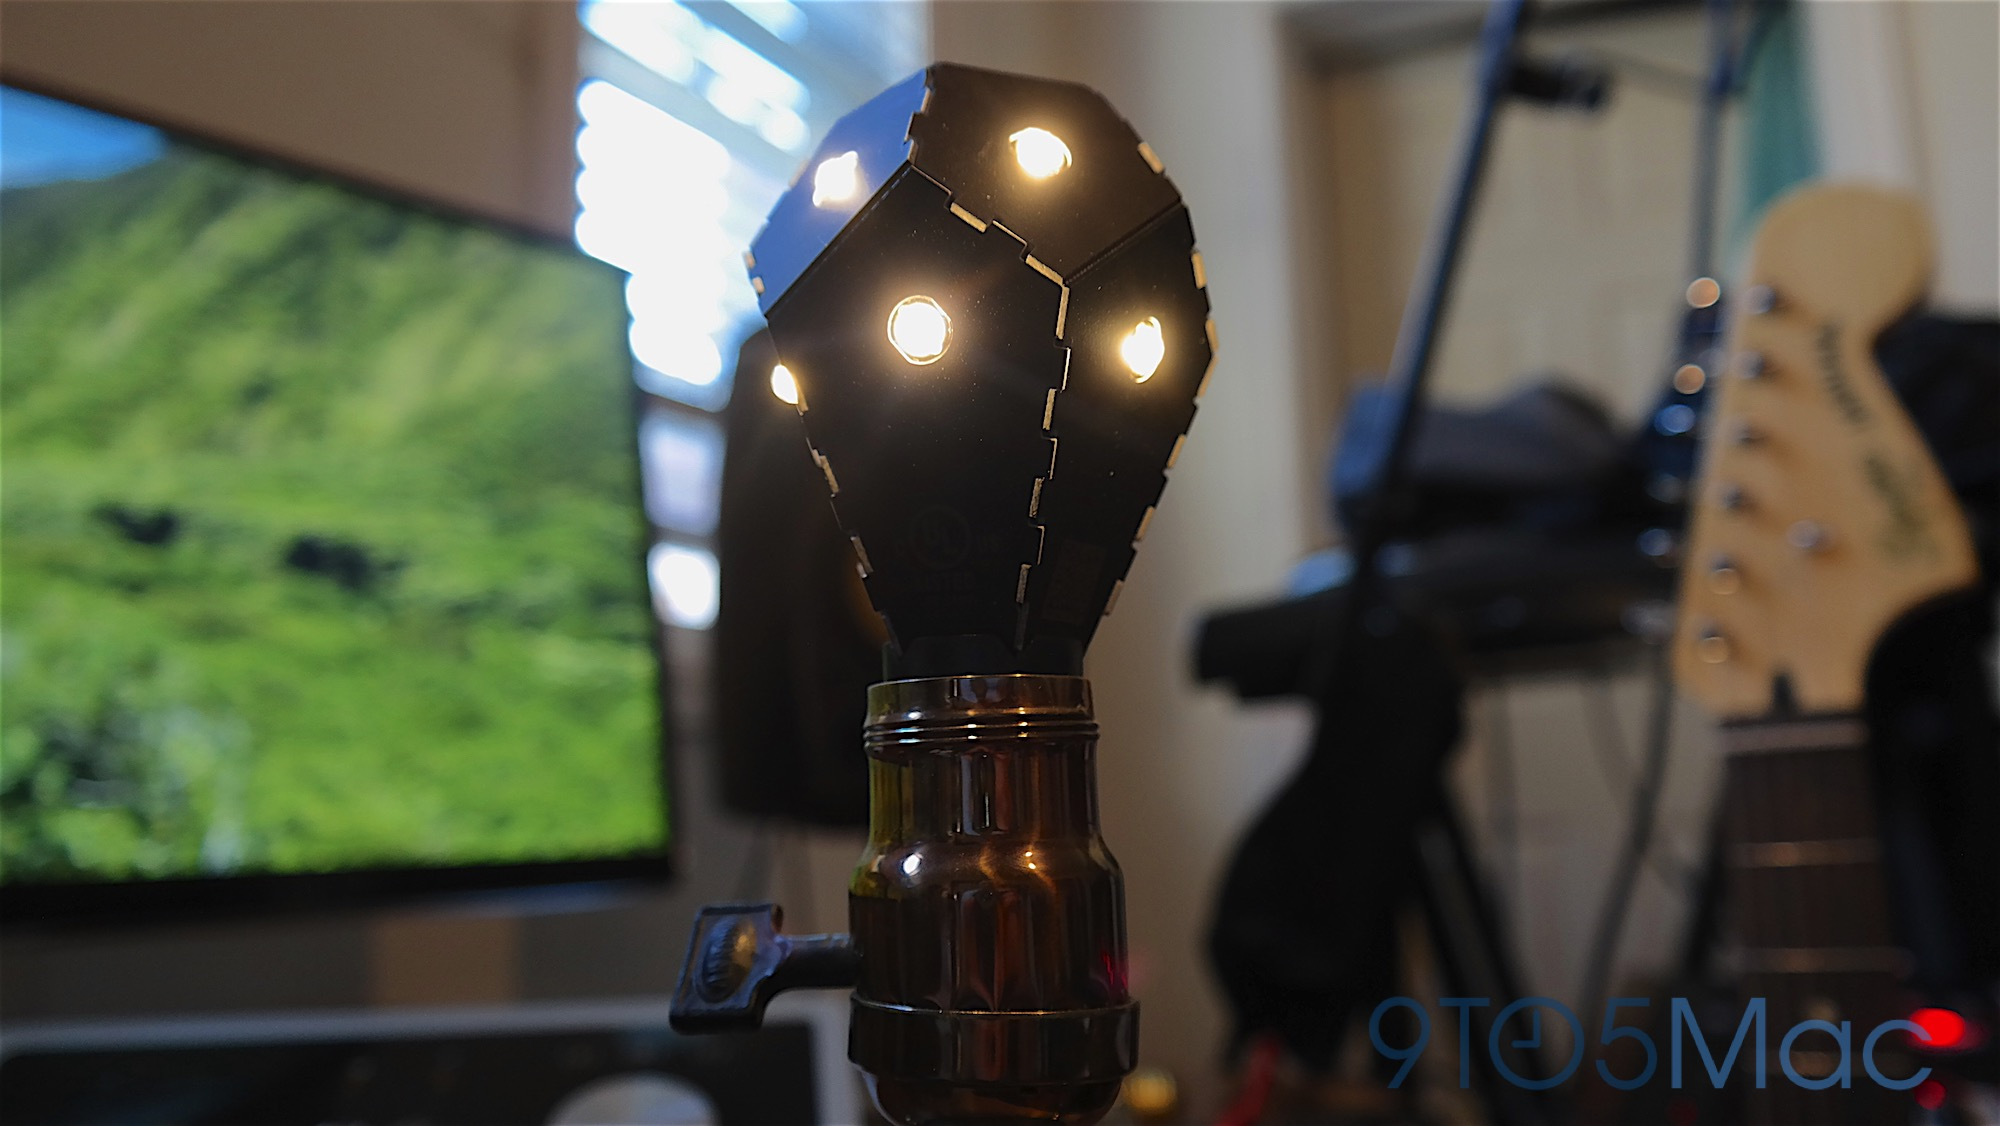 Review Nanoleaf Ivy A Homekit Lightbulb Made From Foldable Circuit Board Lamp Neatorama Should